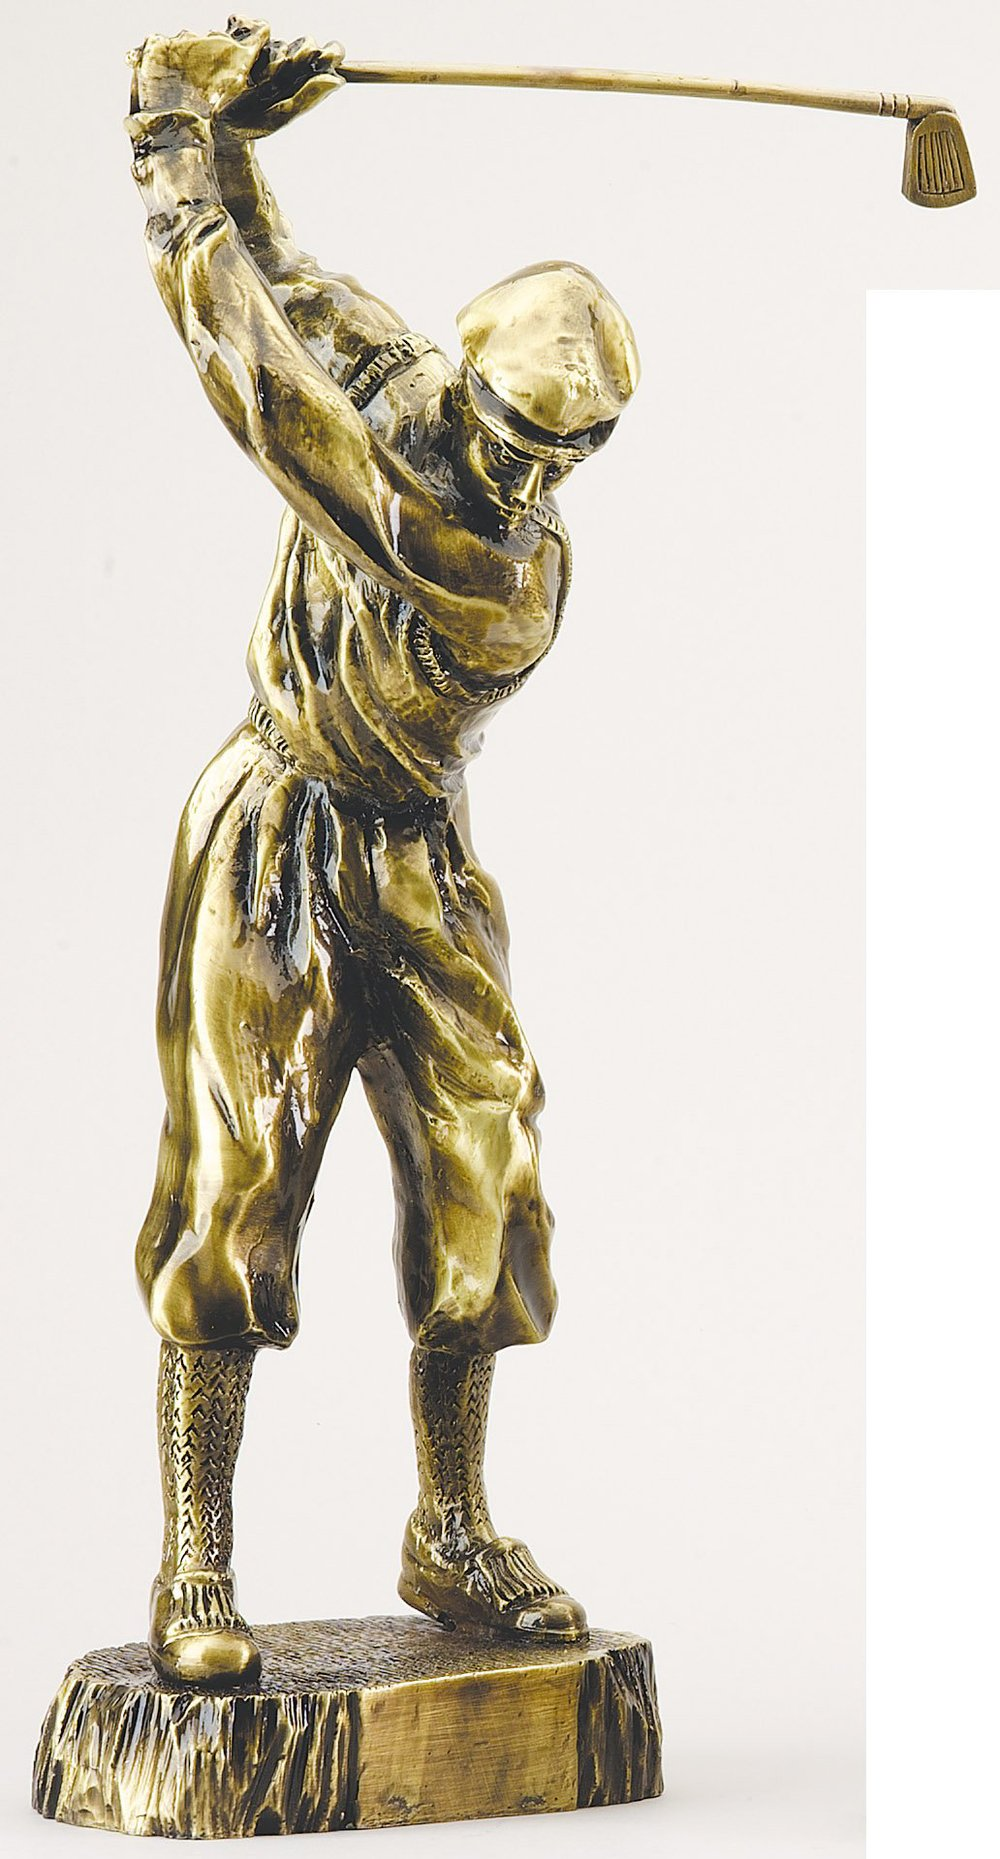 "Gold Cast Metal Finish - Classic Golfer X-Large: RFG175 - 17"" tall - $89 Large: RFG150 - 15"" tall - $72 Medium: RFG125 - 12.5"" tall - $47"